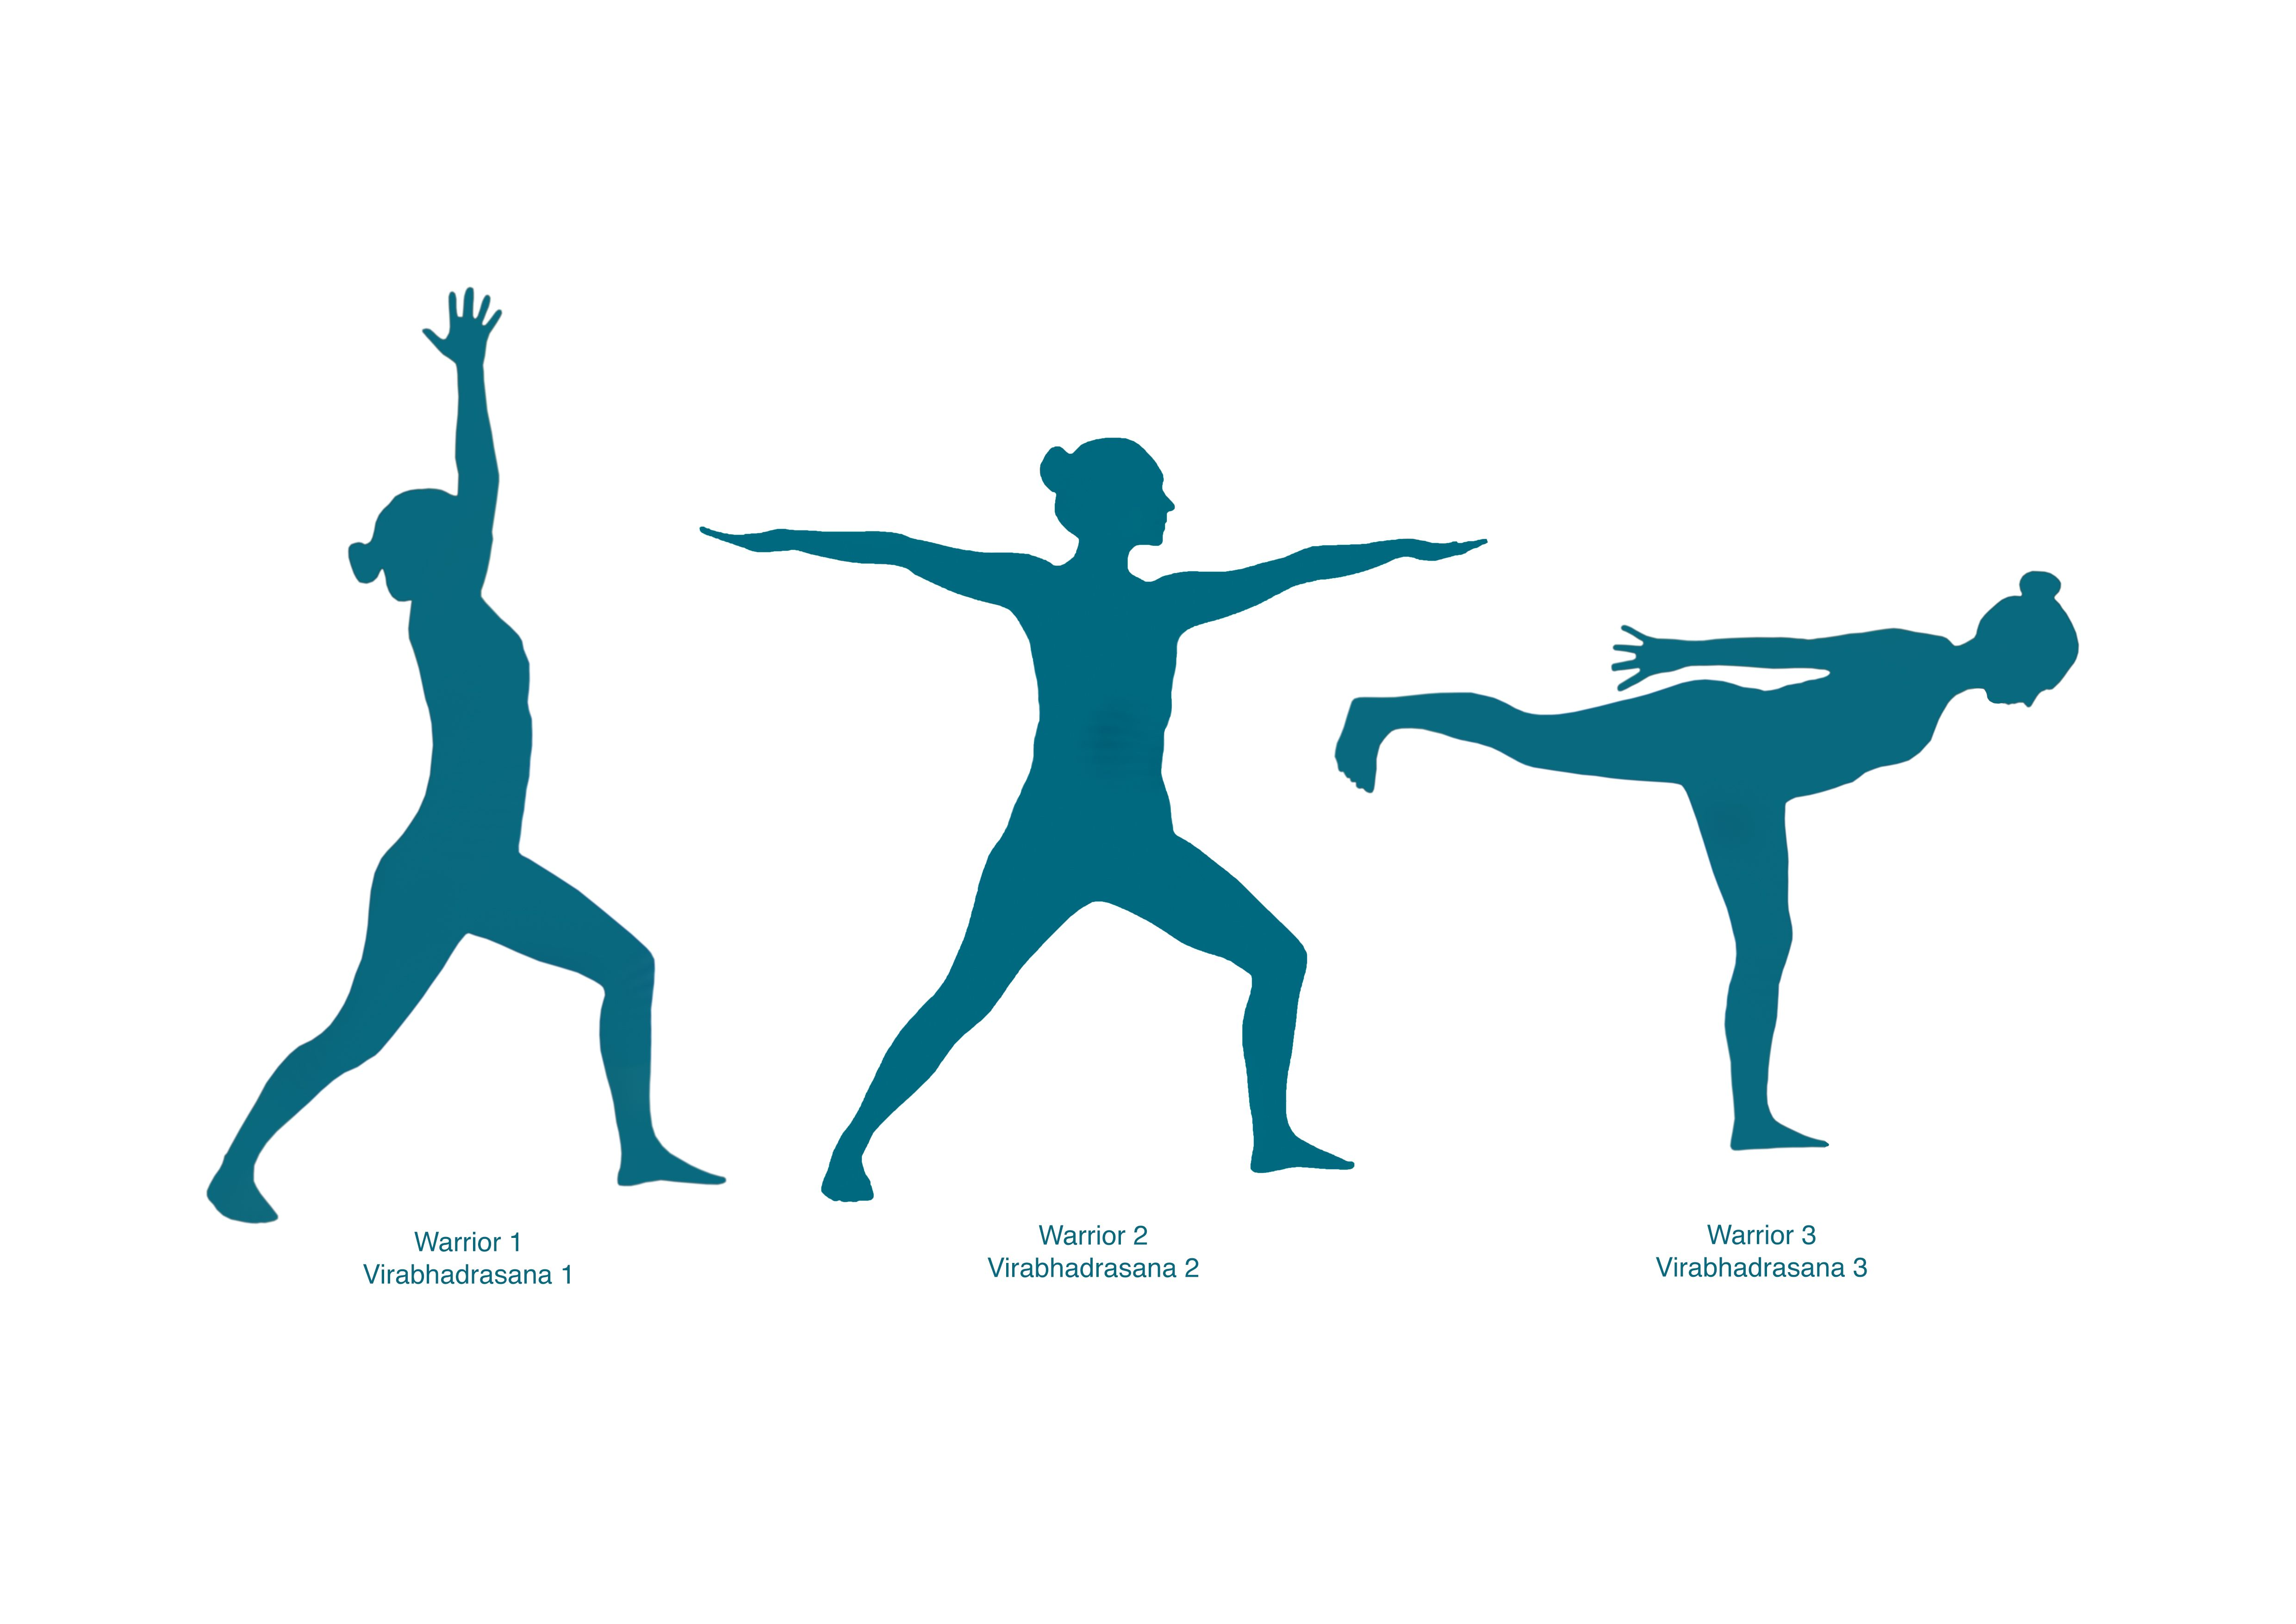 This Is An Environmentally Friendly Bamboo Paper Yoga Art Print Featuring Illustrations Of The Three Warrior Warrior Pose Yoga Warrior Pose Yoga Illustration